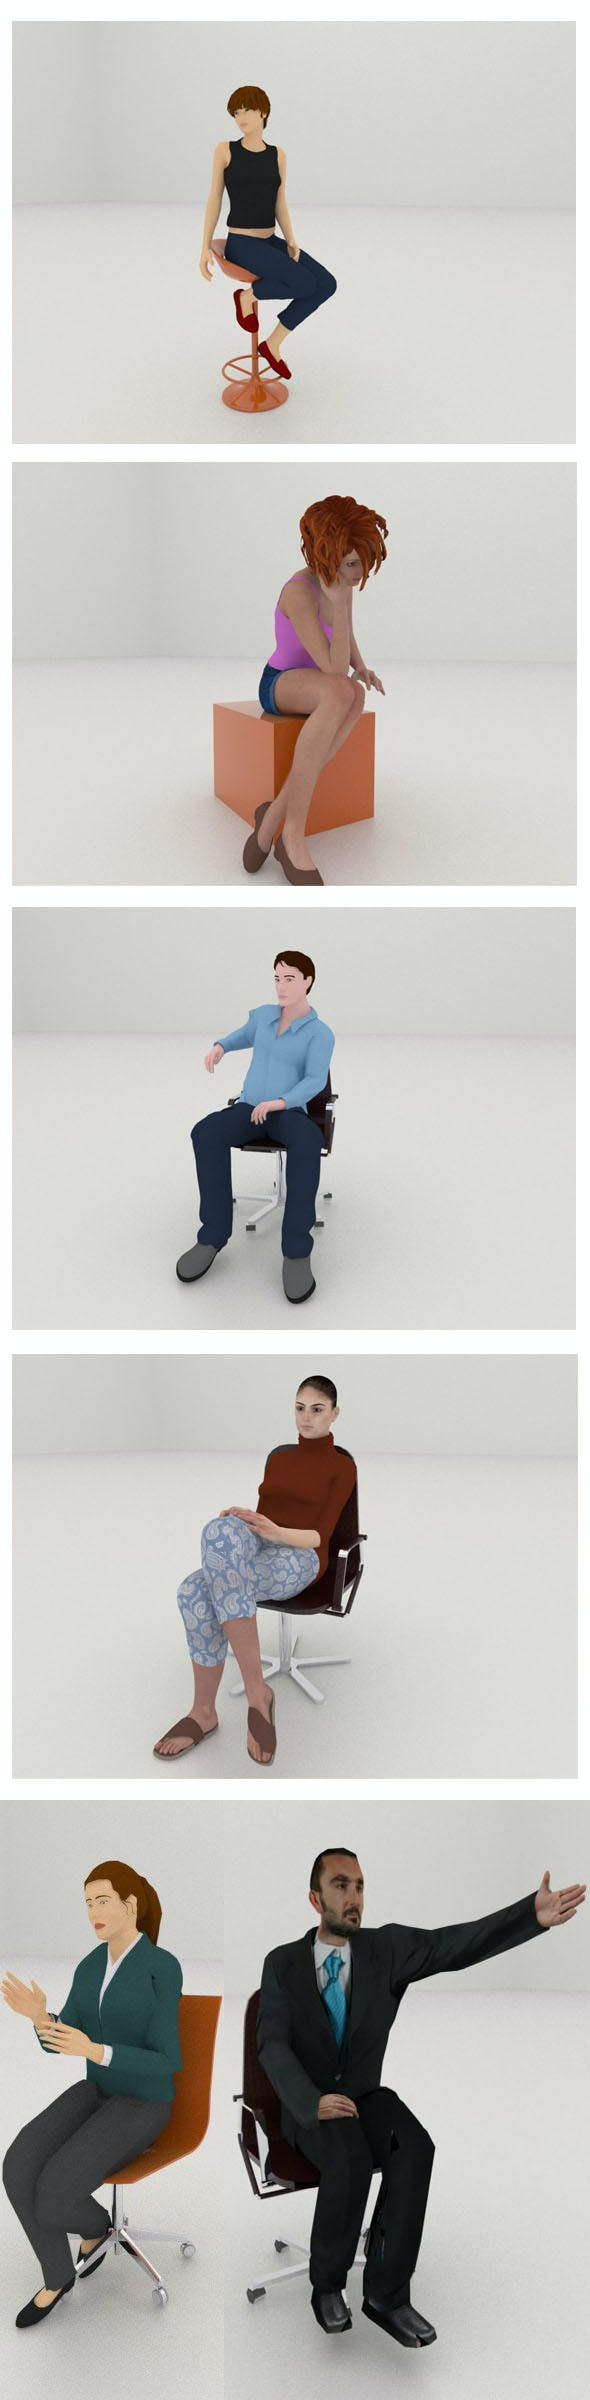 SIX sitting people I - 3DOcean Item for Sale